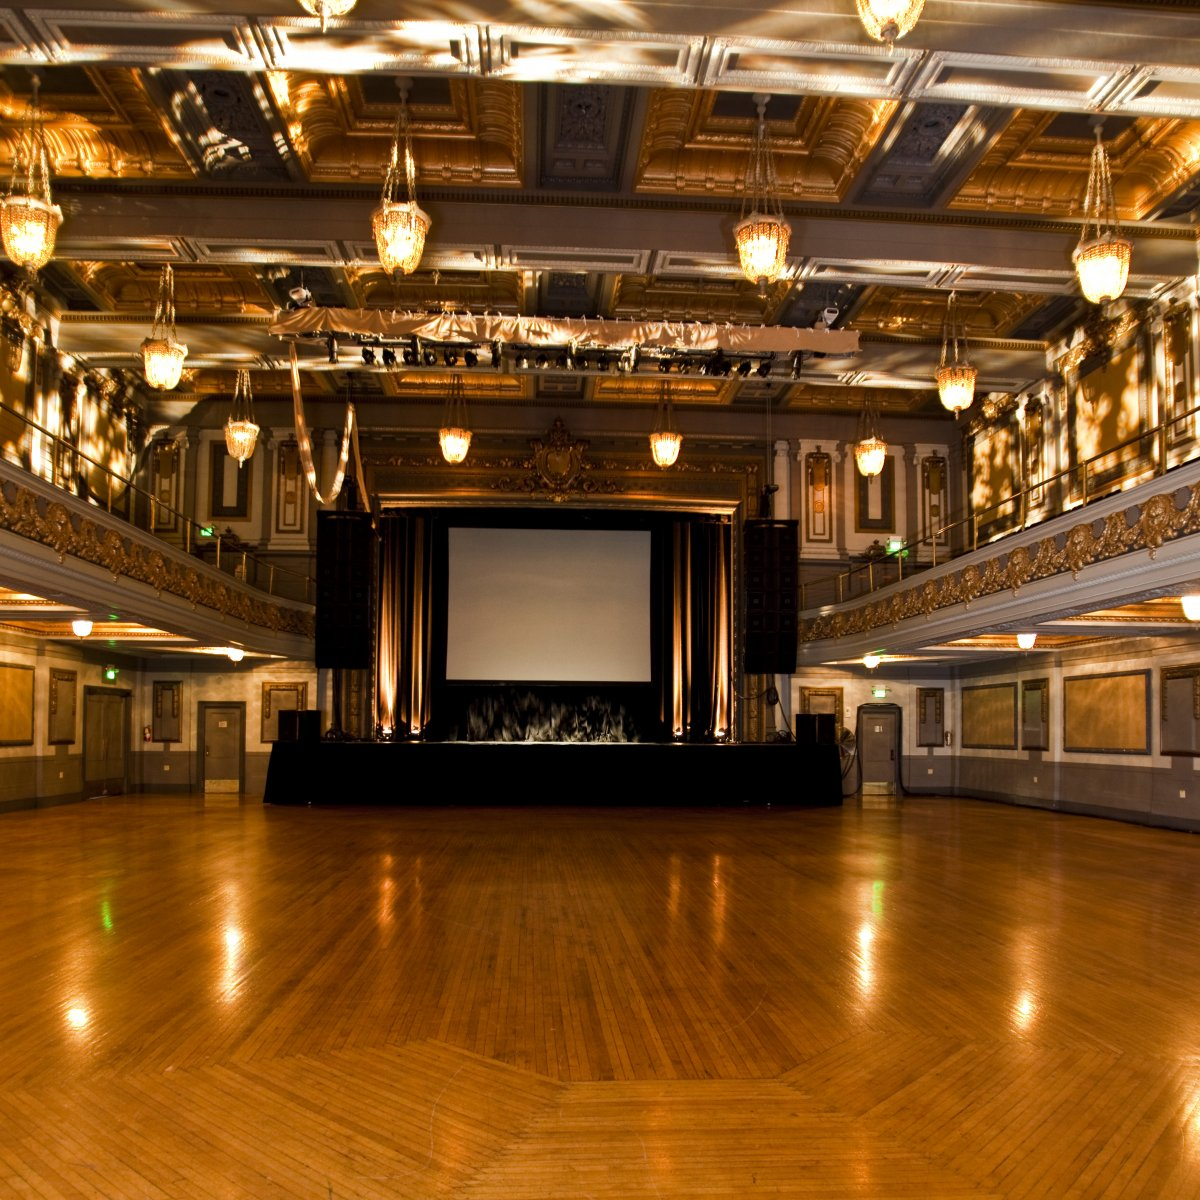 Interior image of the Regency ballroom without guests